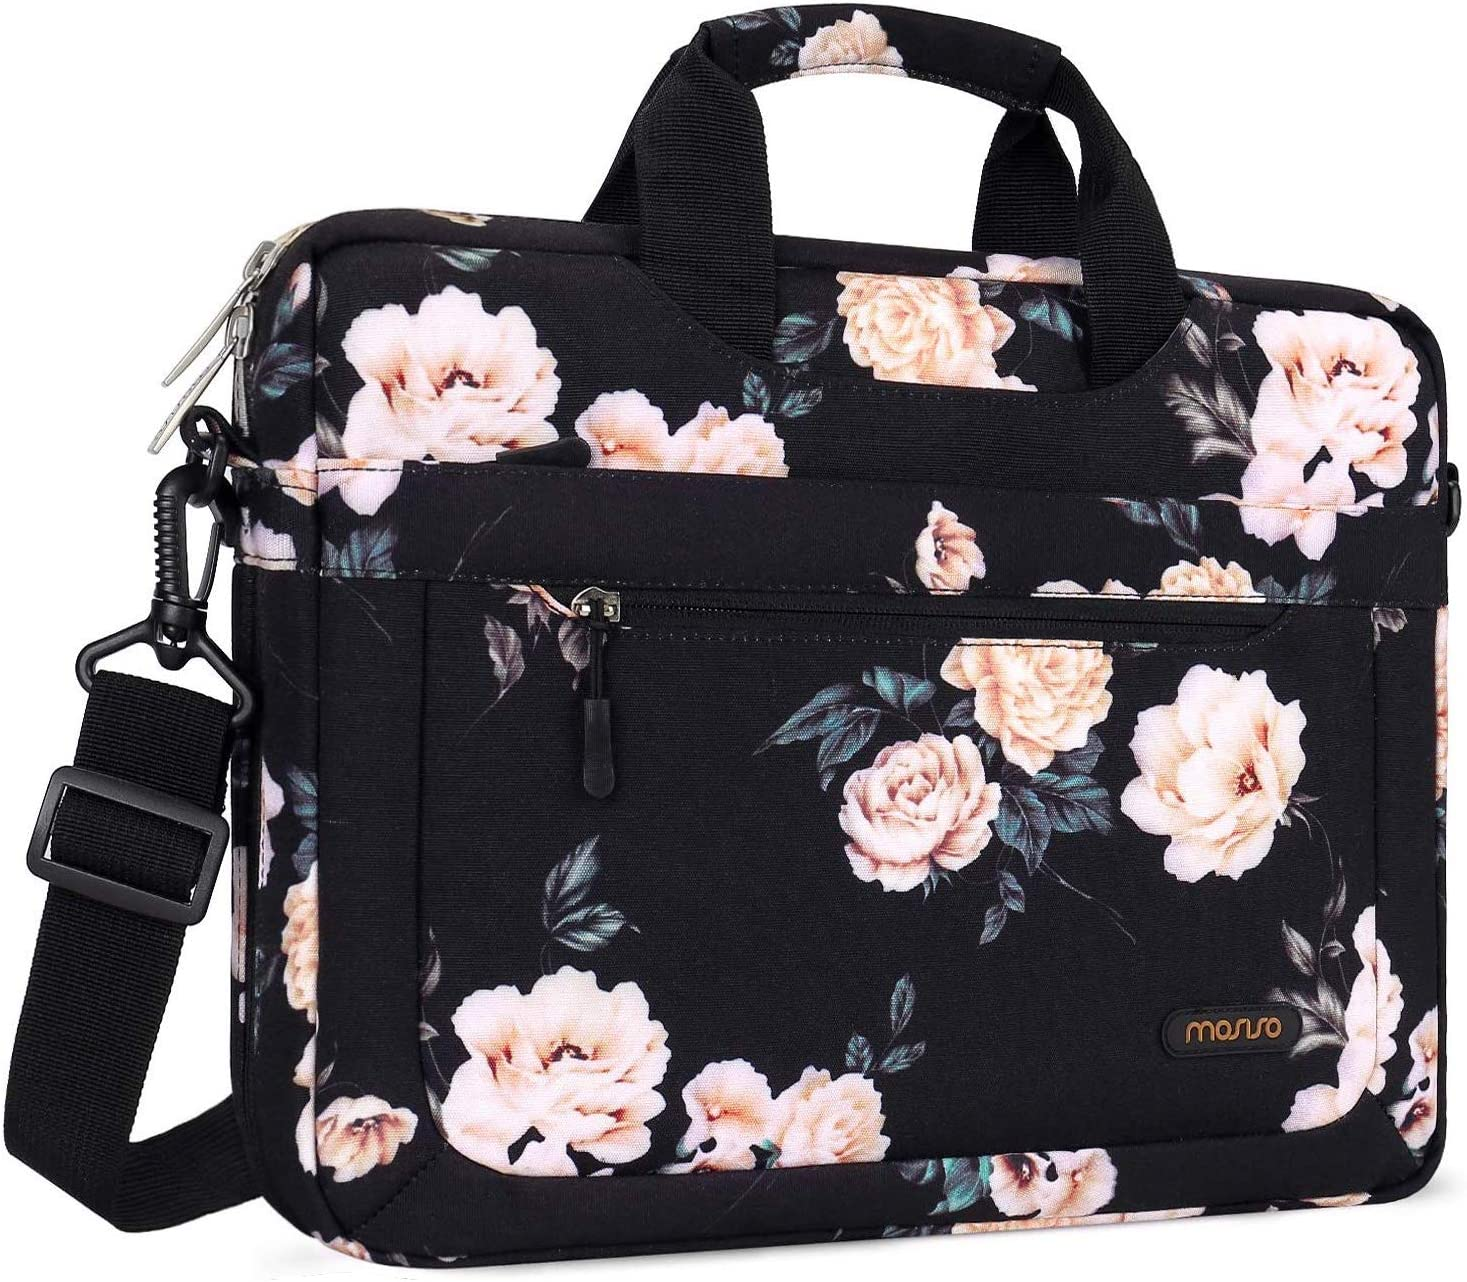 MOSISO Laptop Shoulder Bag Compatible with 13-13.3 inch MacBook Pro Black Notebook MacBook Air Polyester Camellia Messenger Carrying Briefcase Sleeve with Adjustable Depth at Bottom